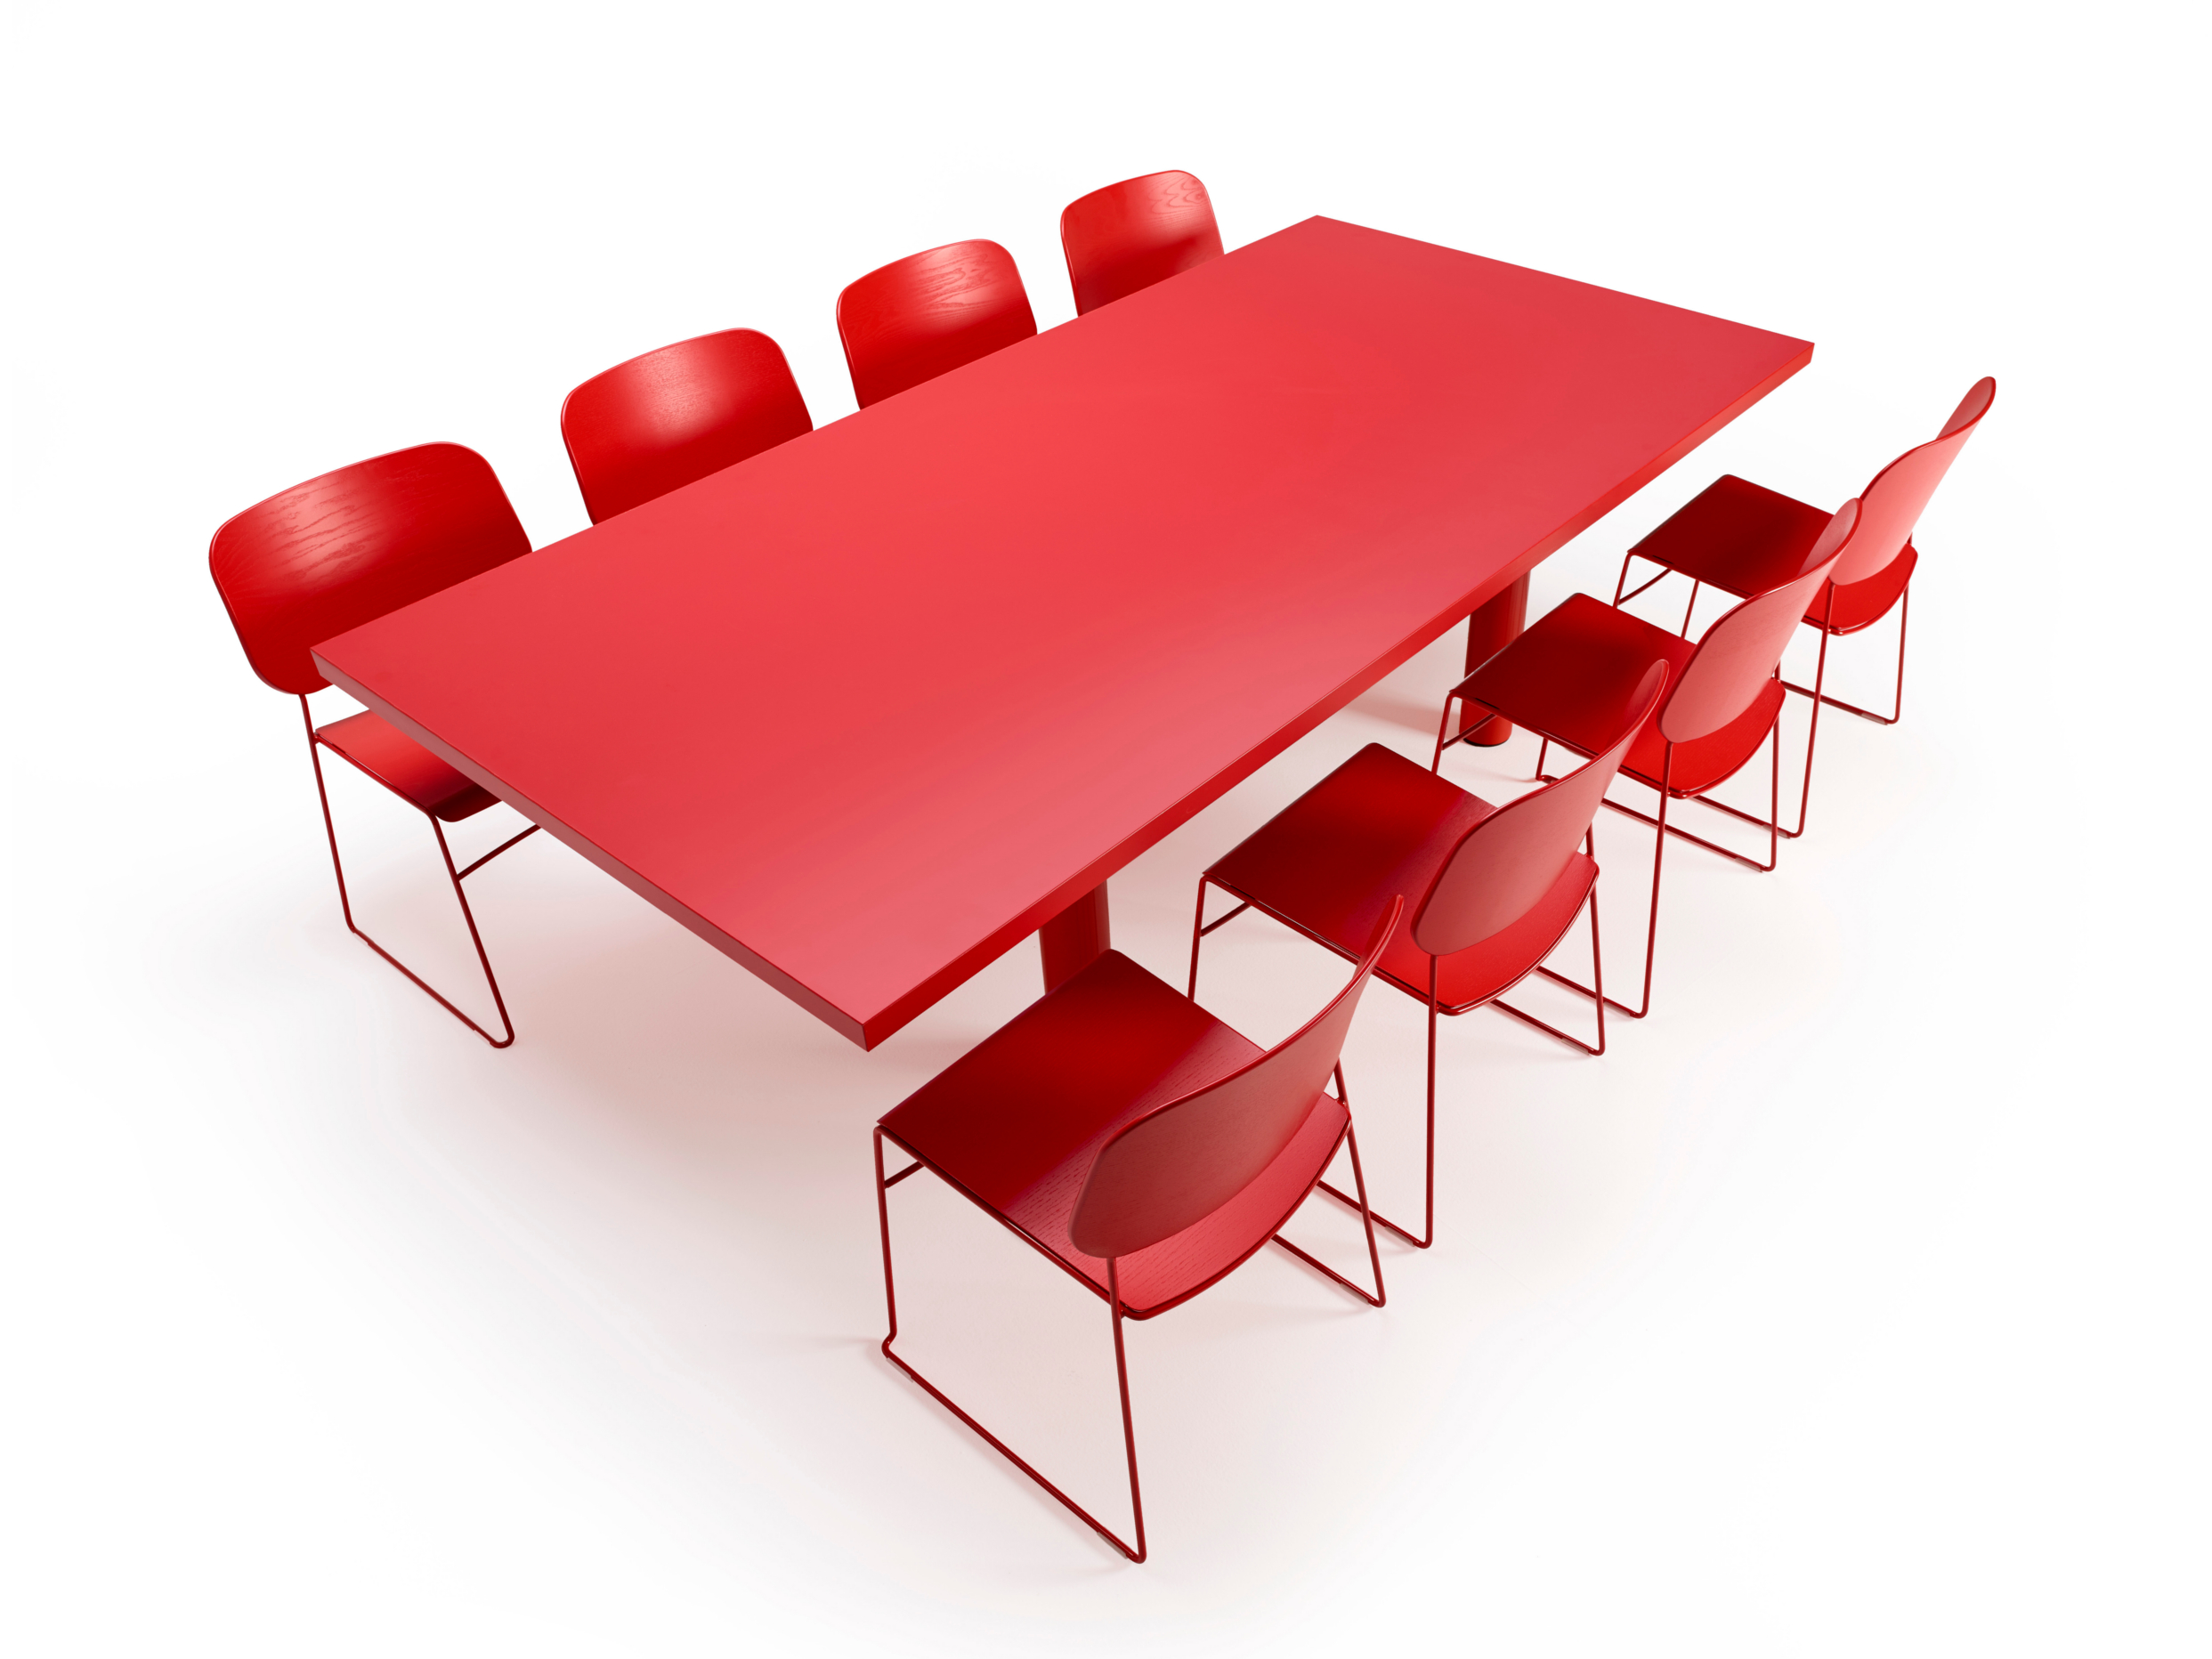 Red rectangle conference table 10 seats for sale new design Popular